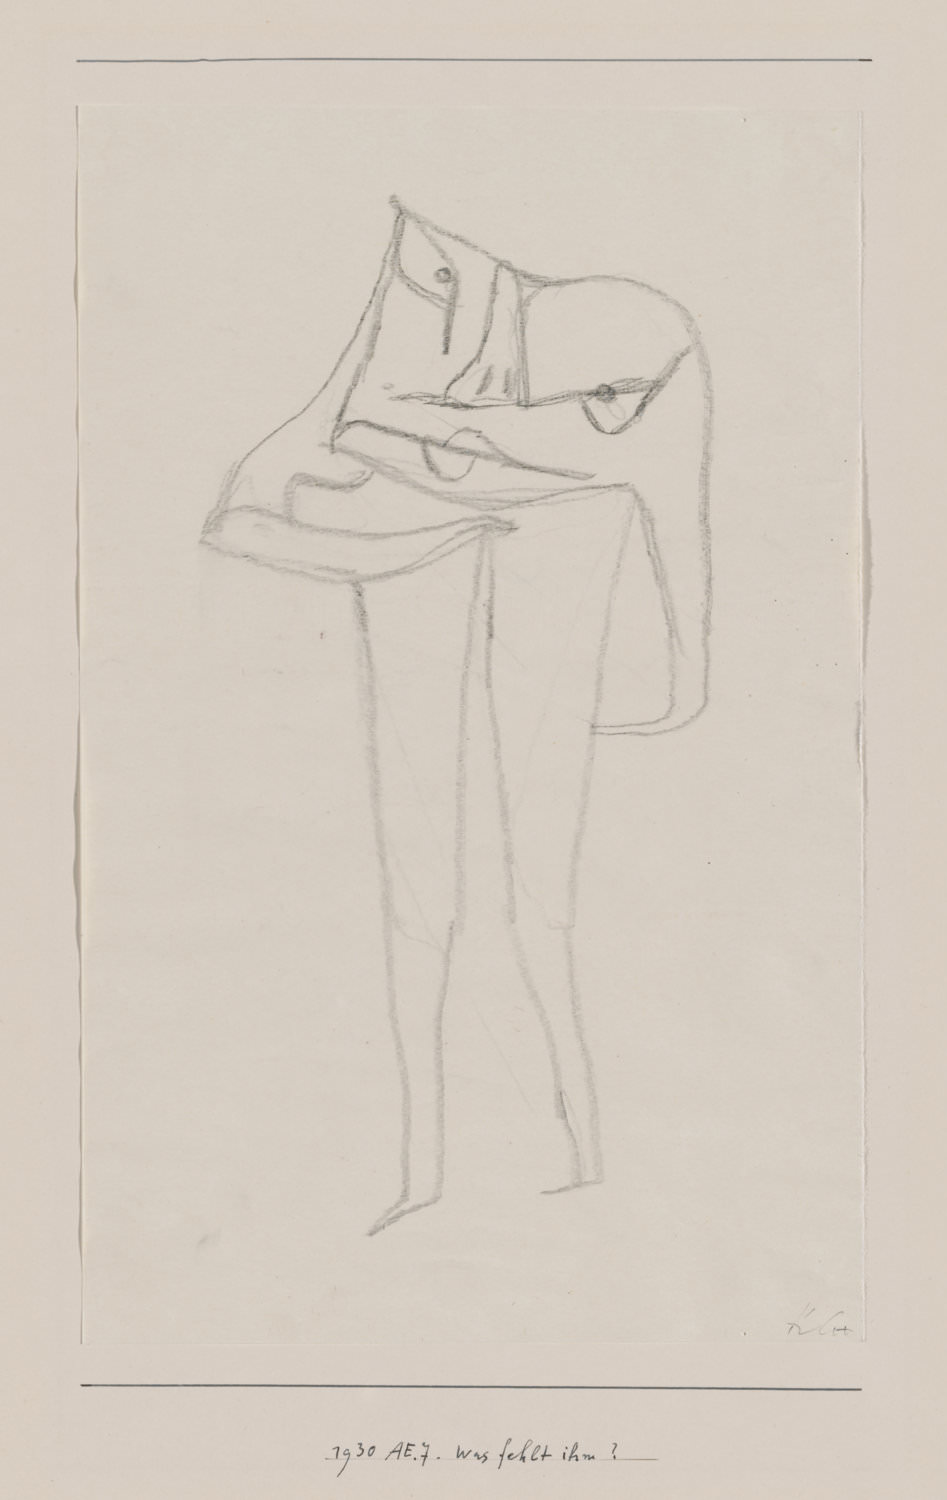 Paul Klee, was fehlt ihm?, 1930, 267, what's the Matter with Him?, pencil on paper on cardboard, 32,9 x 20,9 cm, Zentrum Paul Klee, Bern © Zentrum Paul Klee, Bern, Bildarchiv